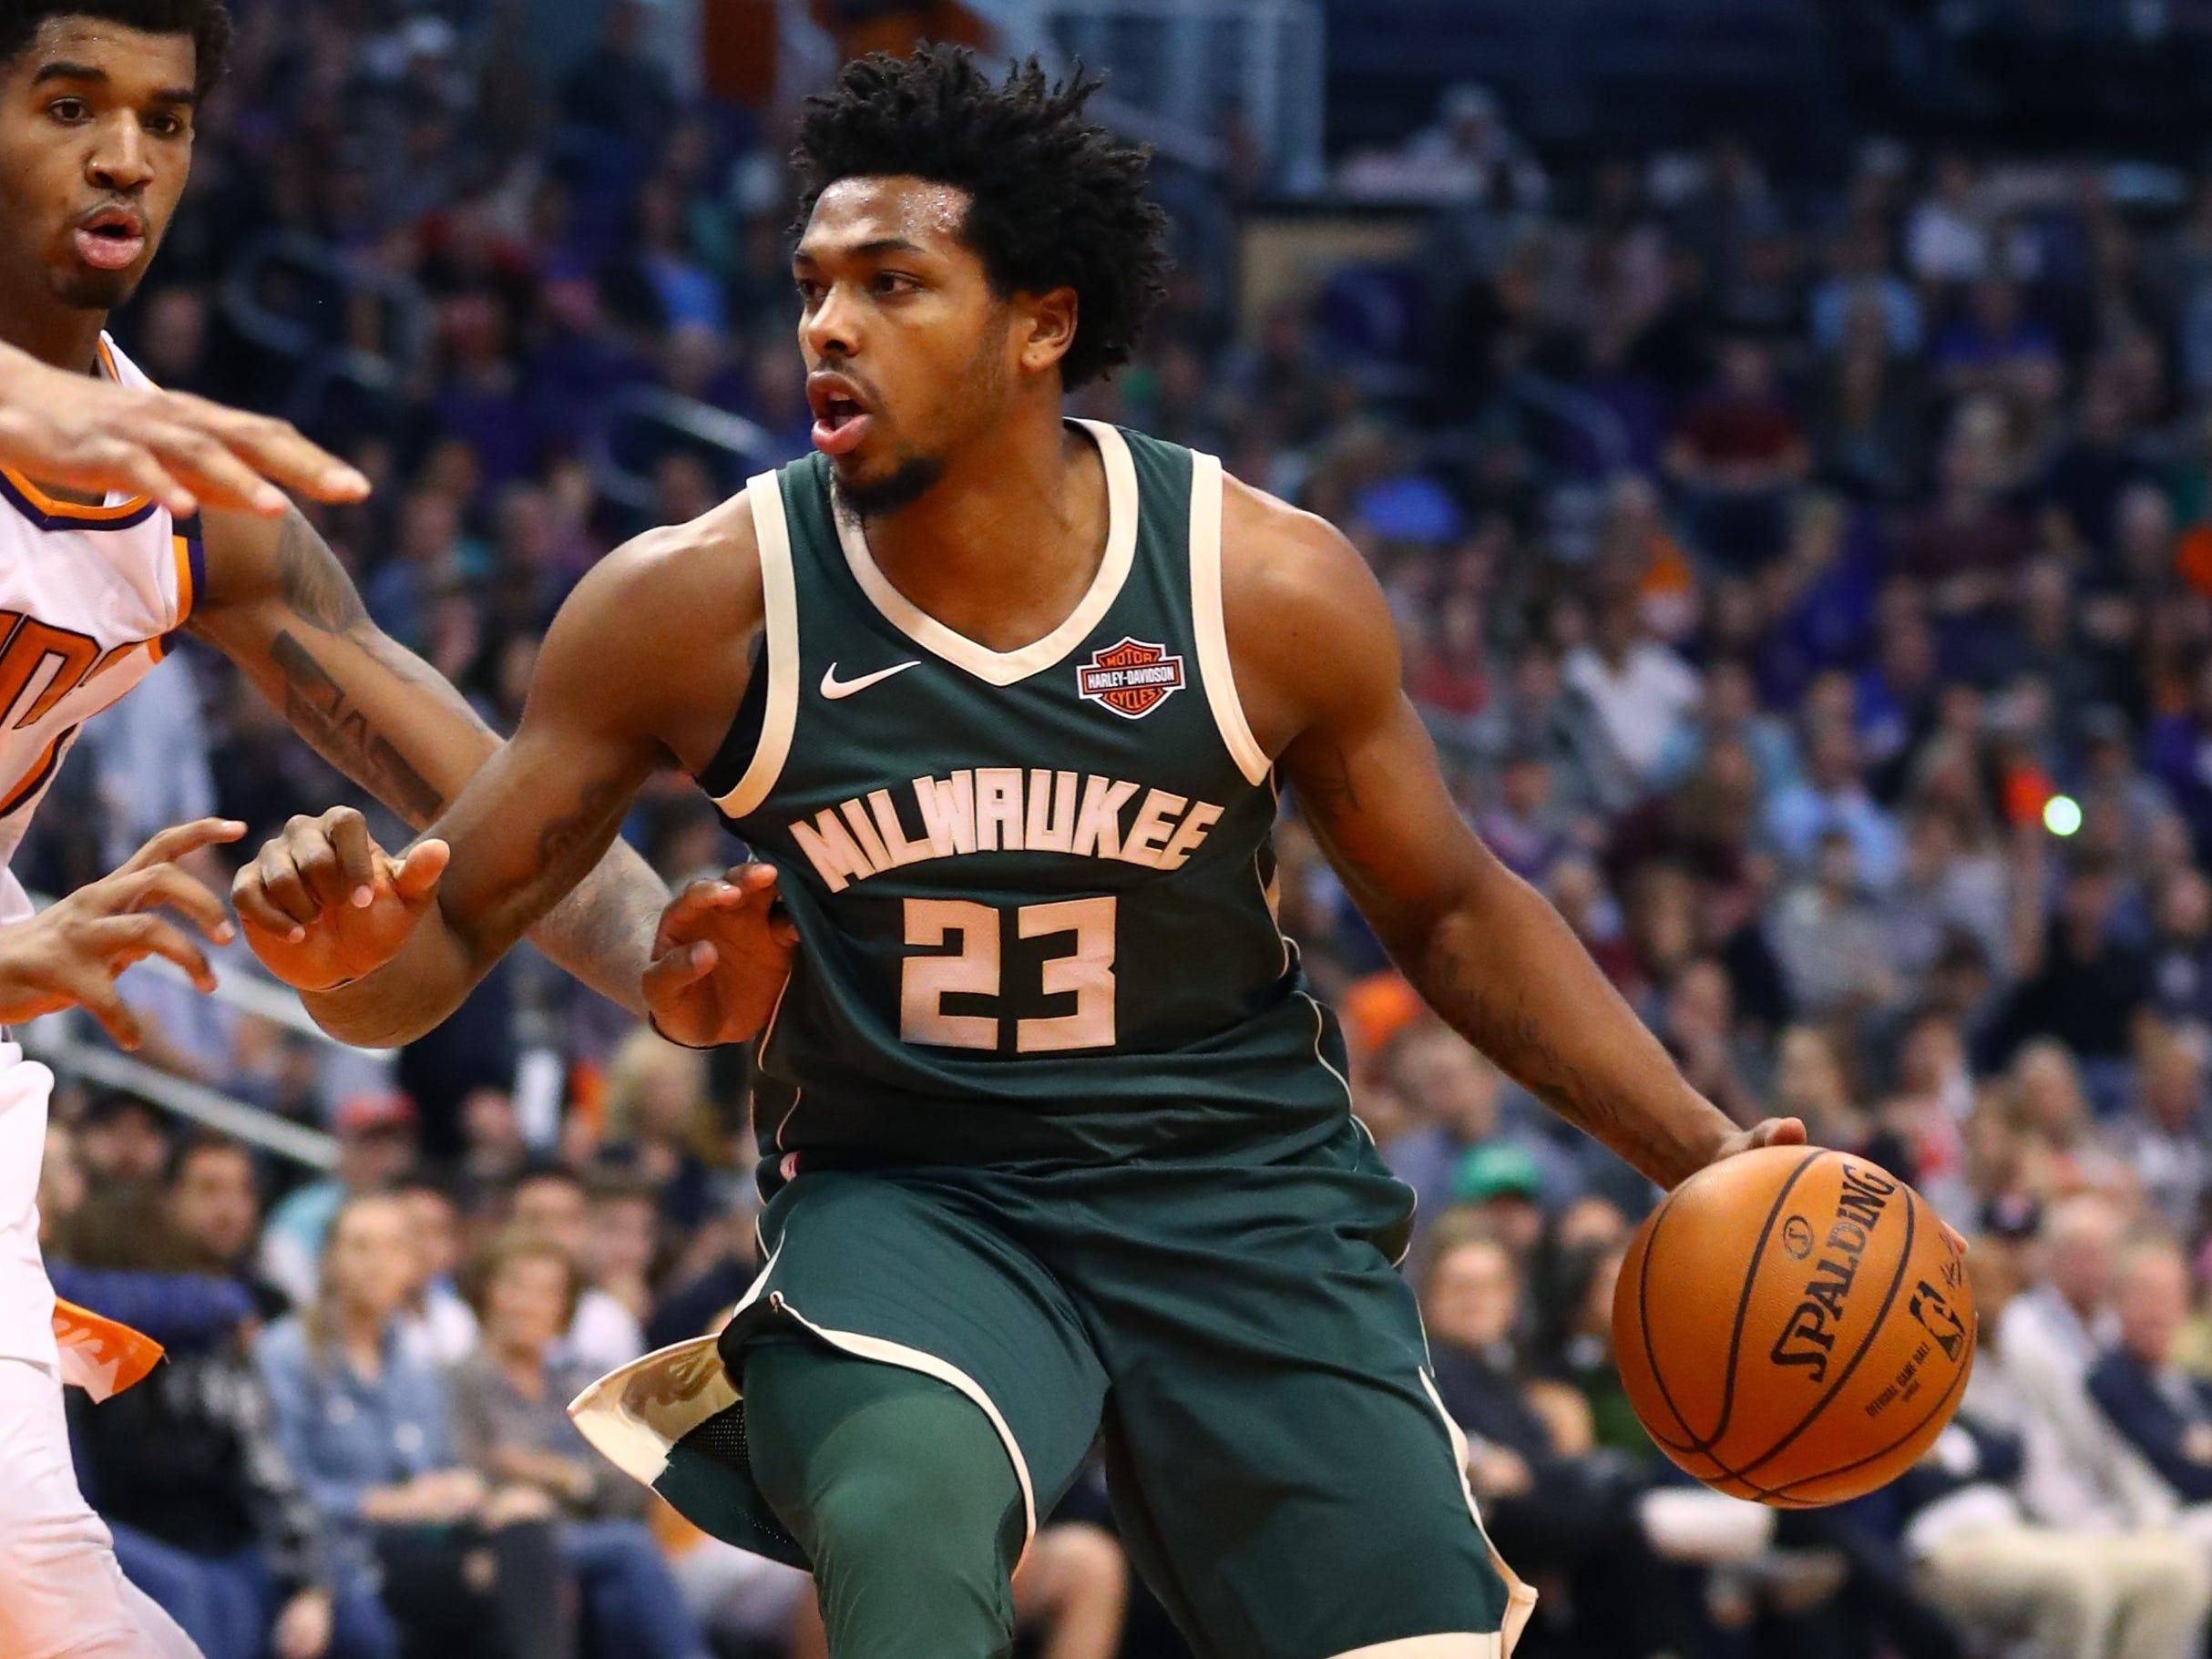 One officer involved in the arrest of the Milwaukee Bucks' Sterling Brown fired